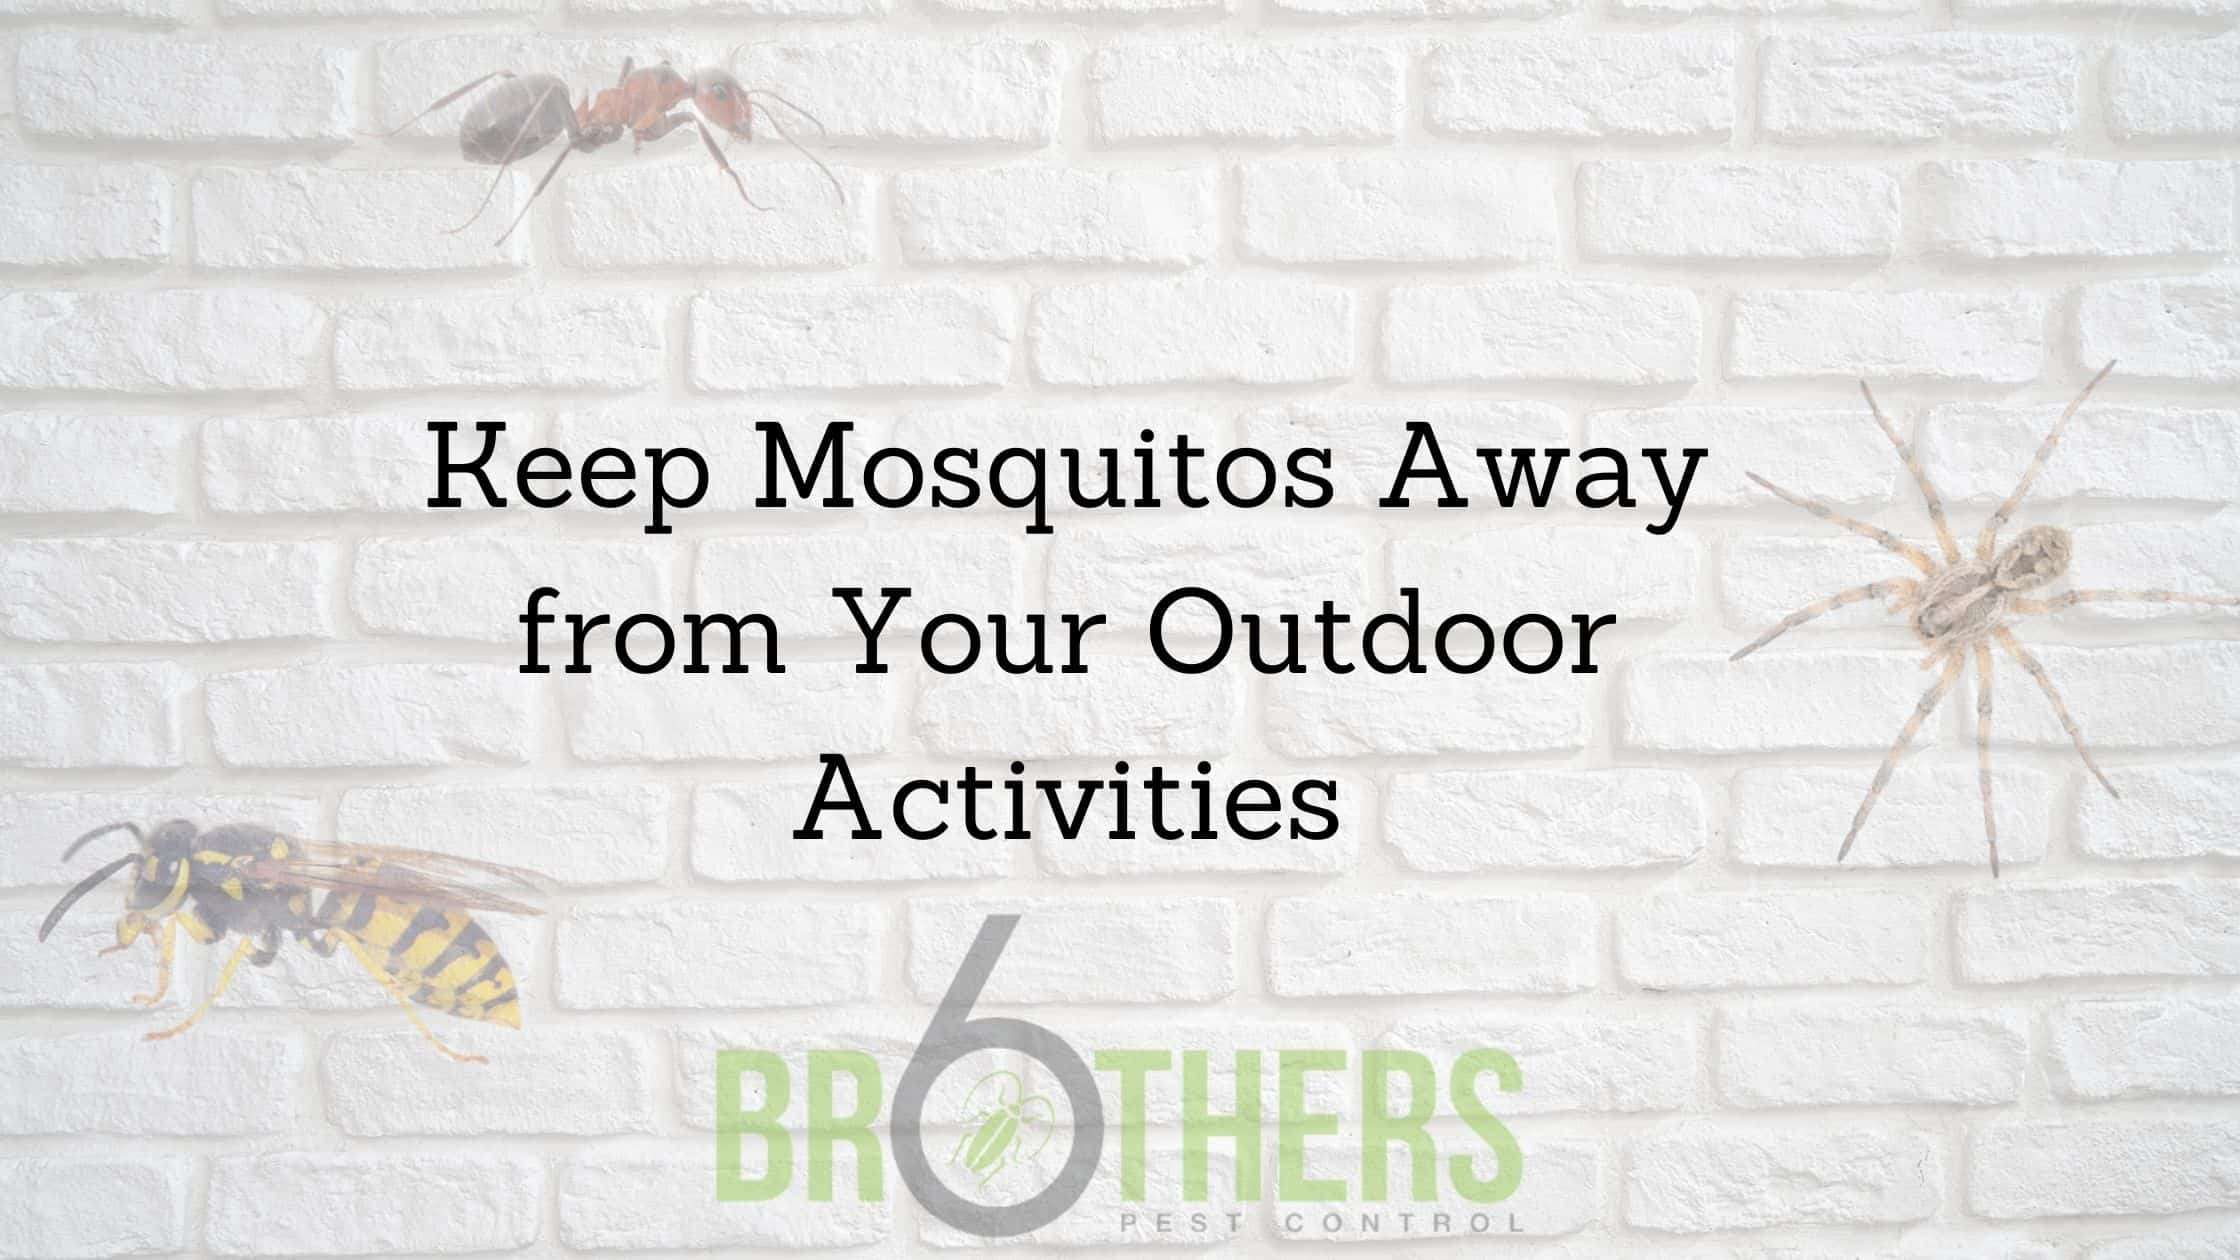 Keep Mosquitos Away from Your Outdoor Activities, Henderson, NV